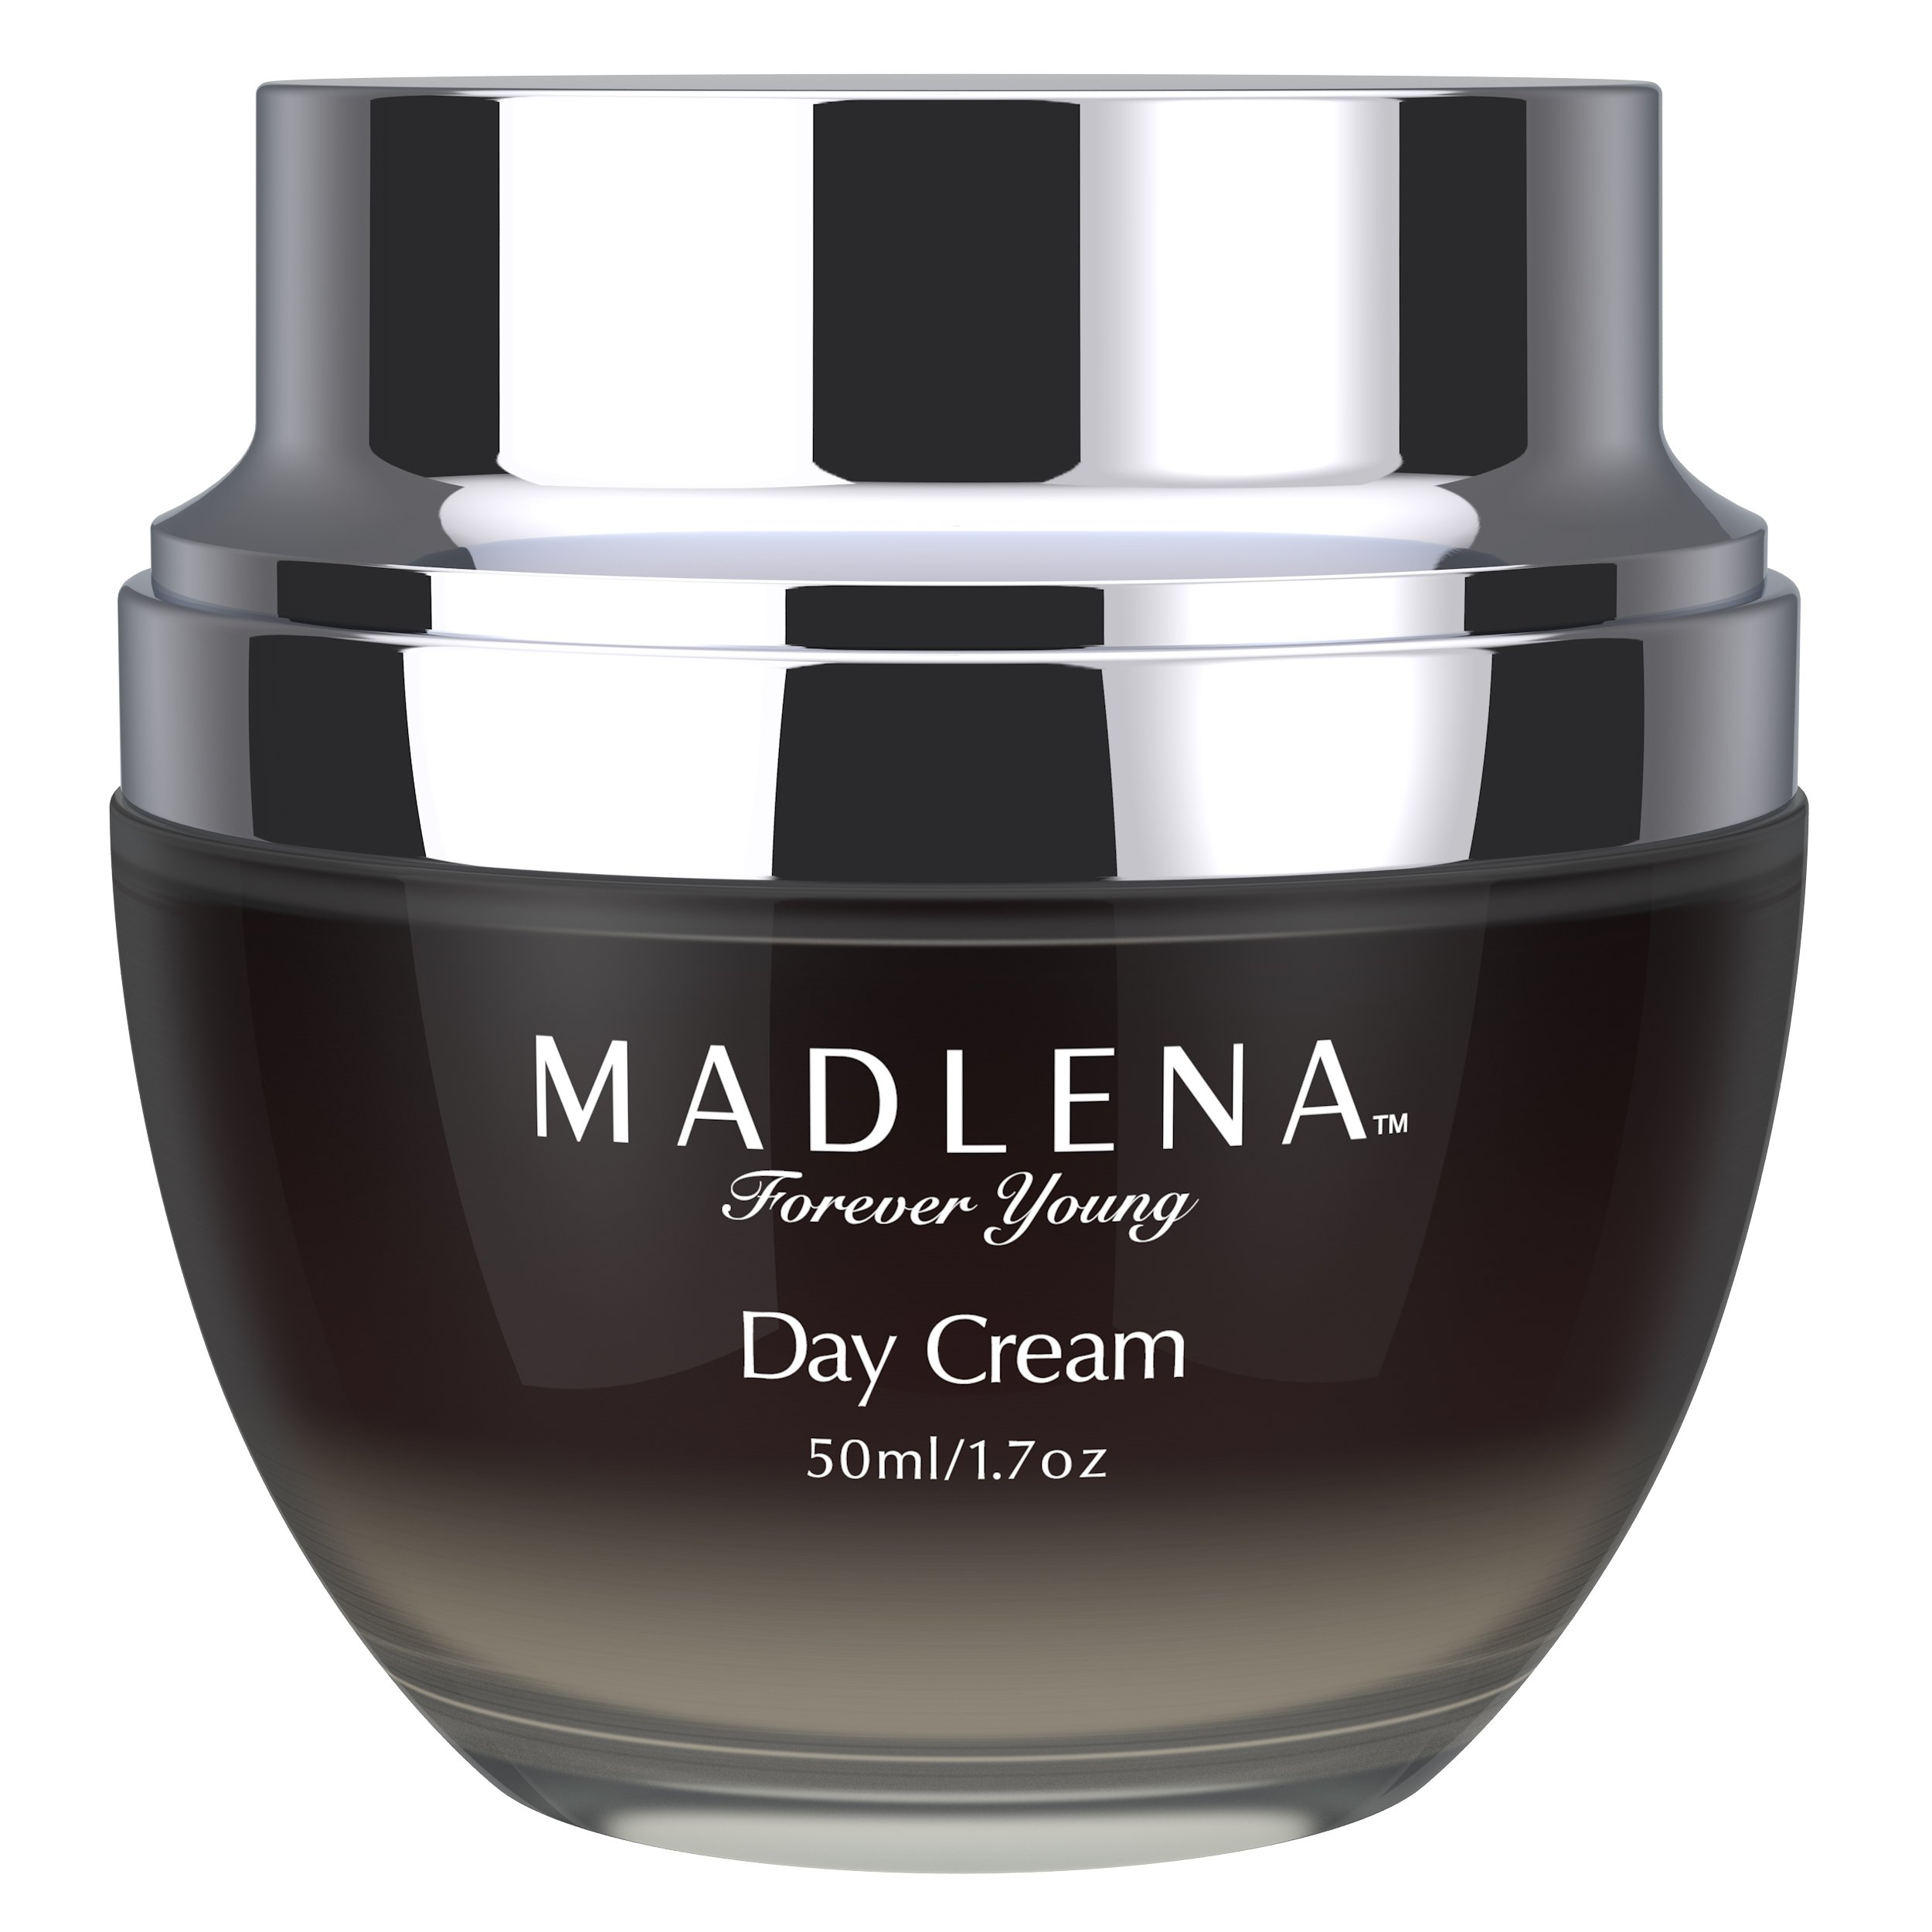 Madlena Anti-Aging Face Day Cream for Men & Women Advanced Skin Care Moisturizer with Retinol, Hyaluronic Acid & Vitamins for Flawless Complexion - Eliminate Wrinkles and Soft Lines, Tighten and Tone